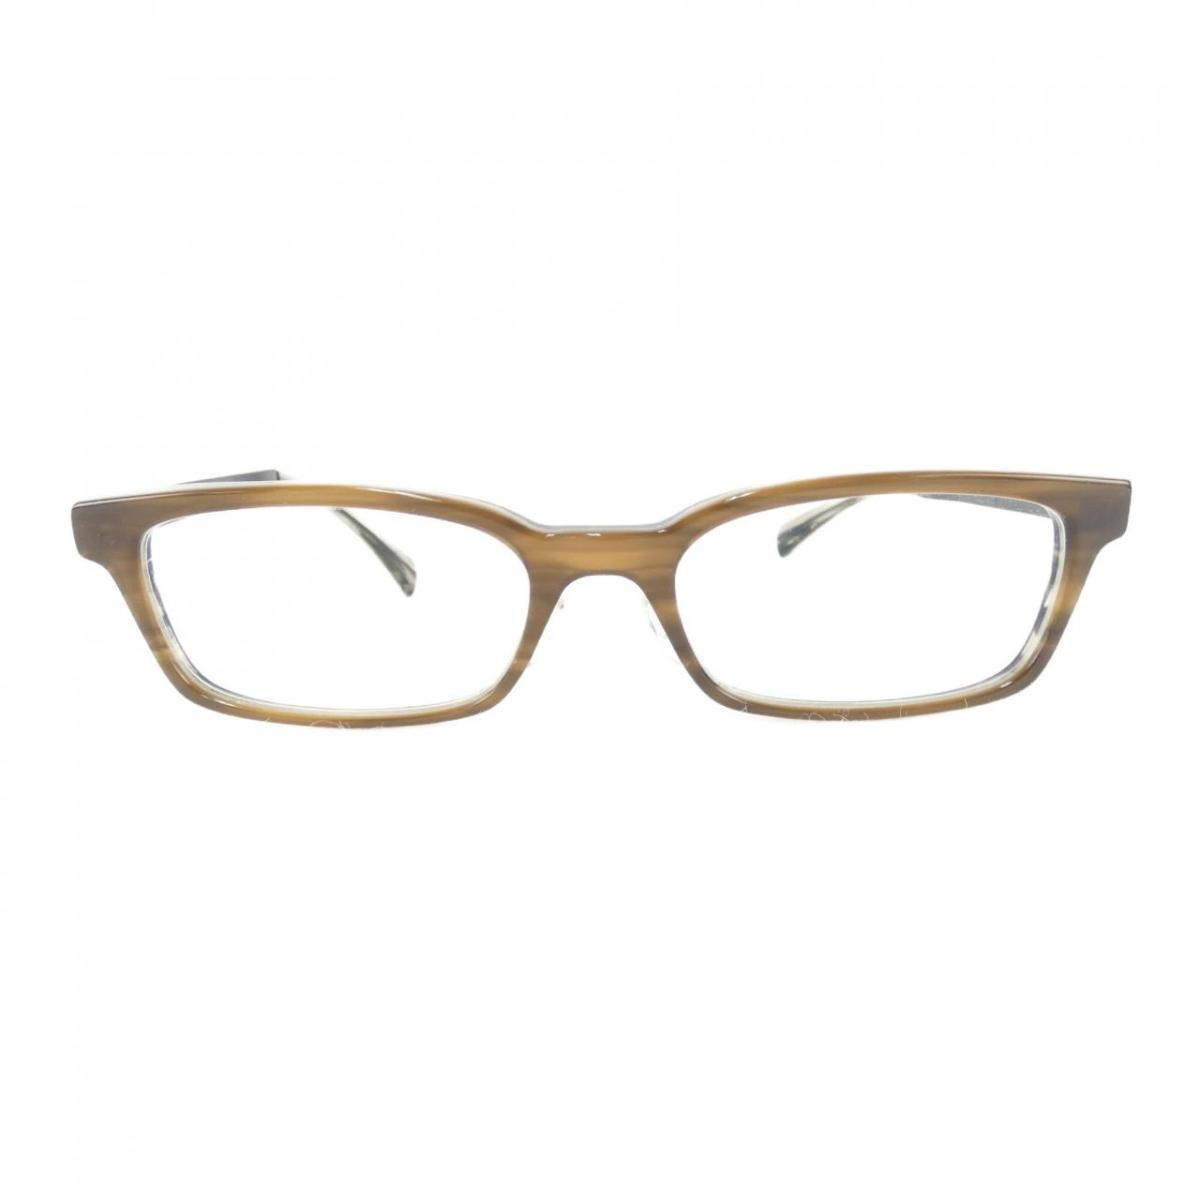 オリバーピープルズ OLIVER PEOPLES EYEWEAR Holloway【中古】